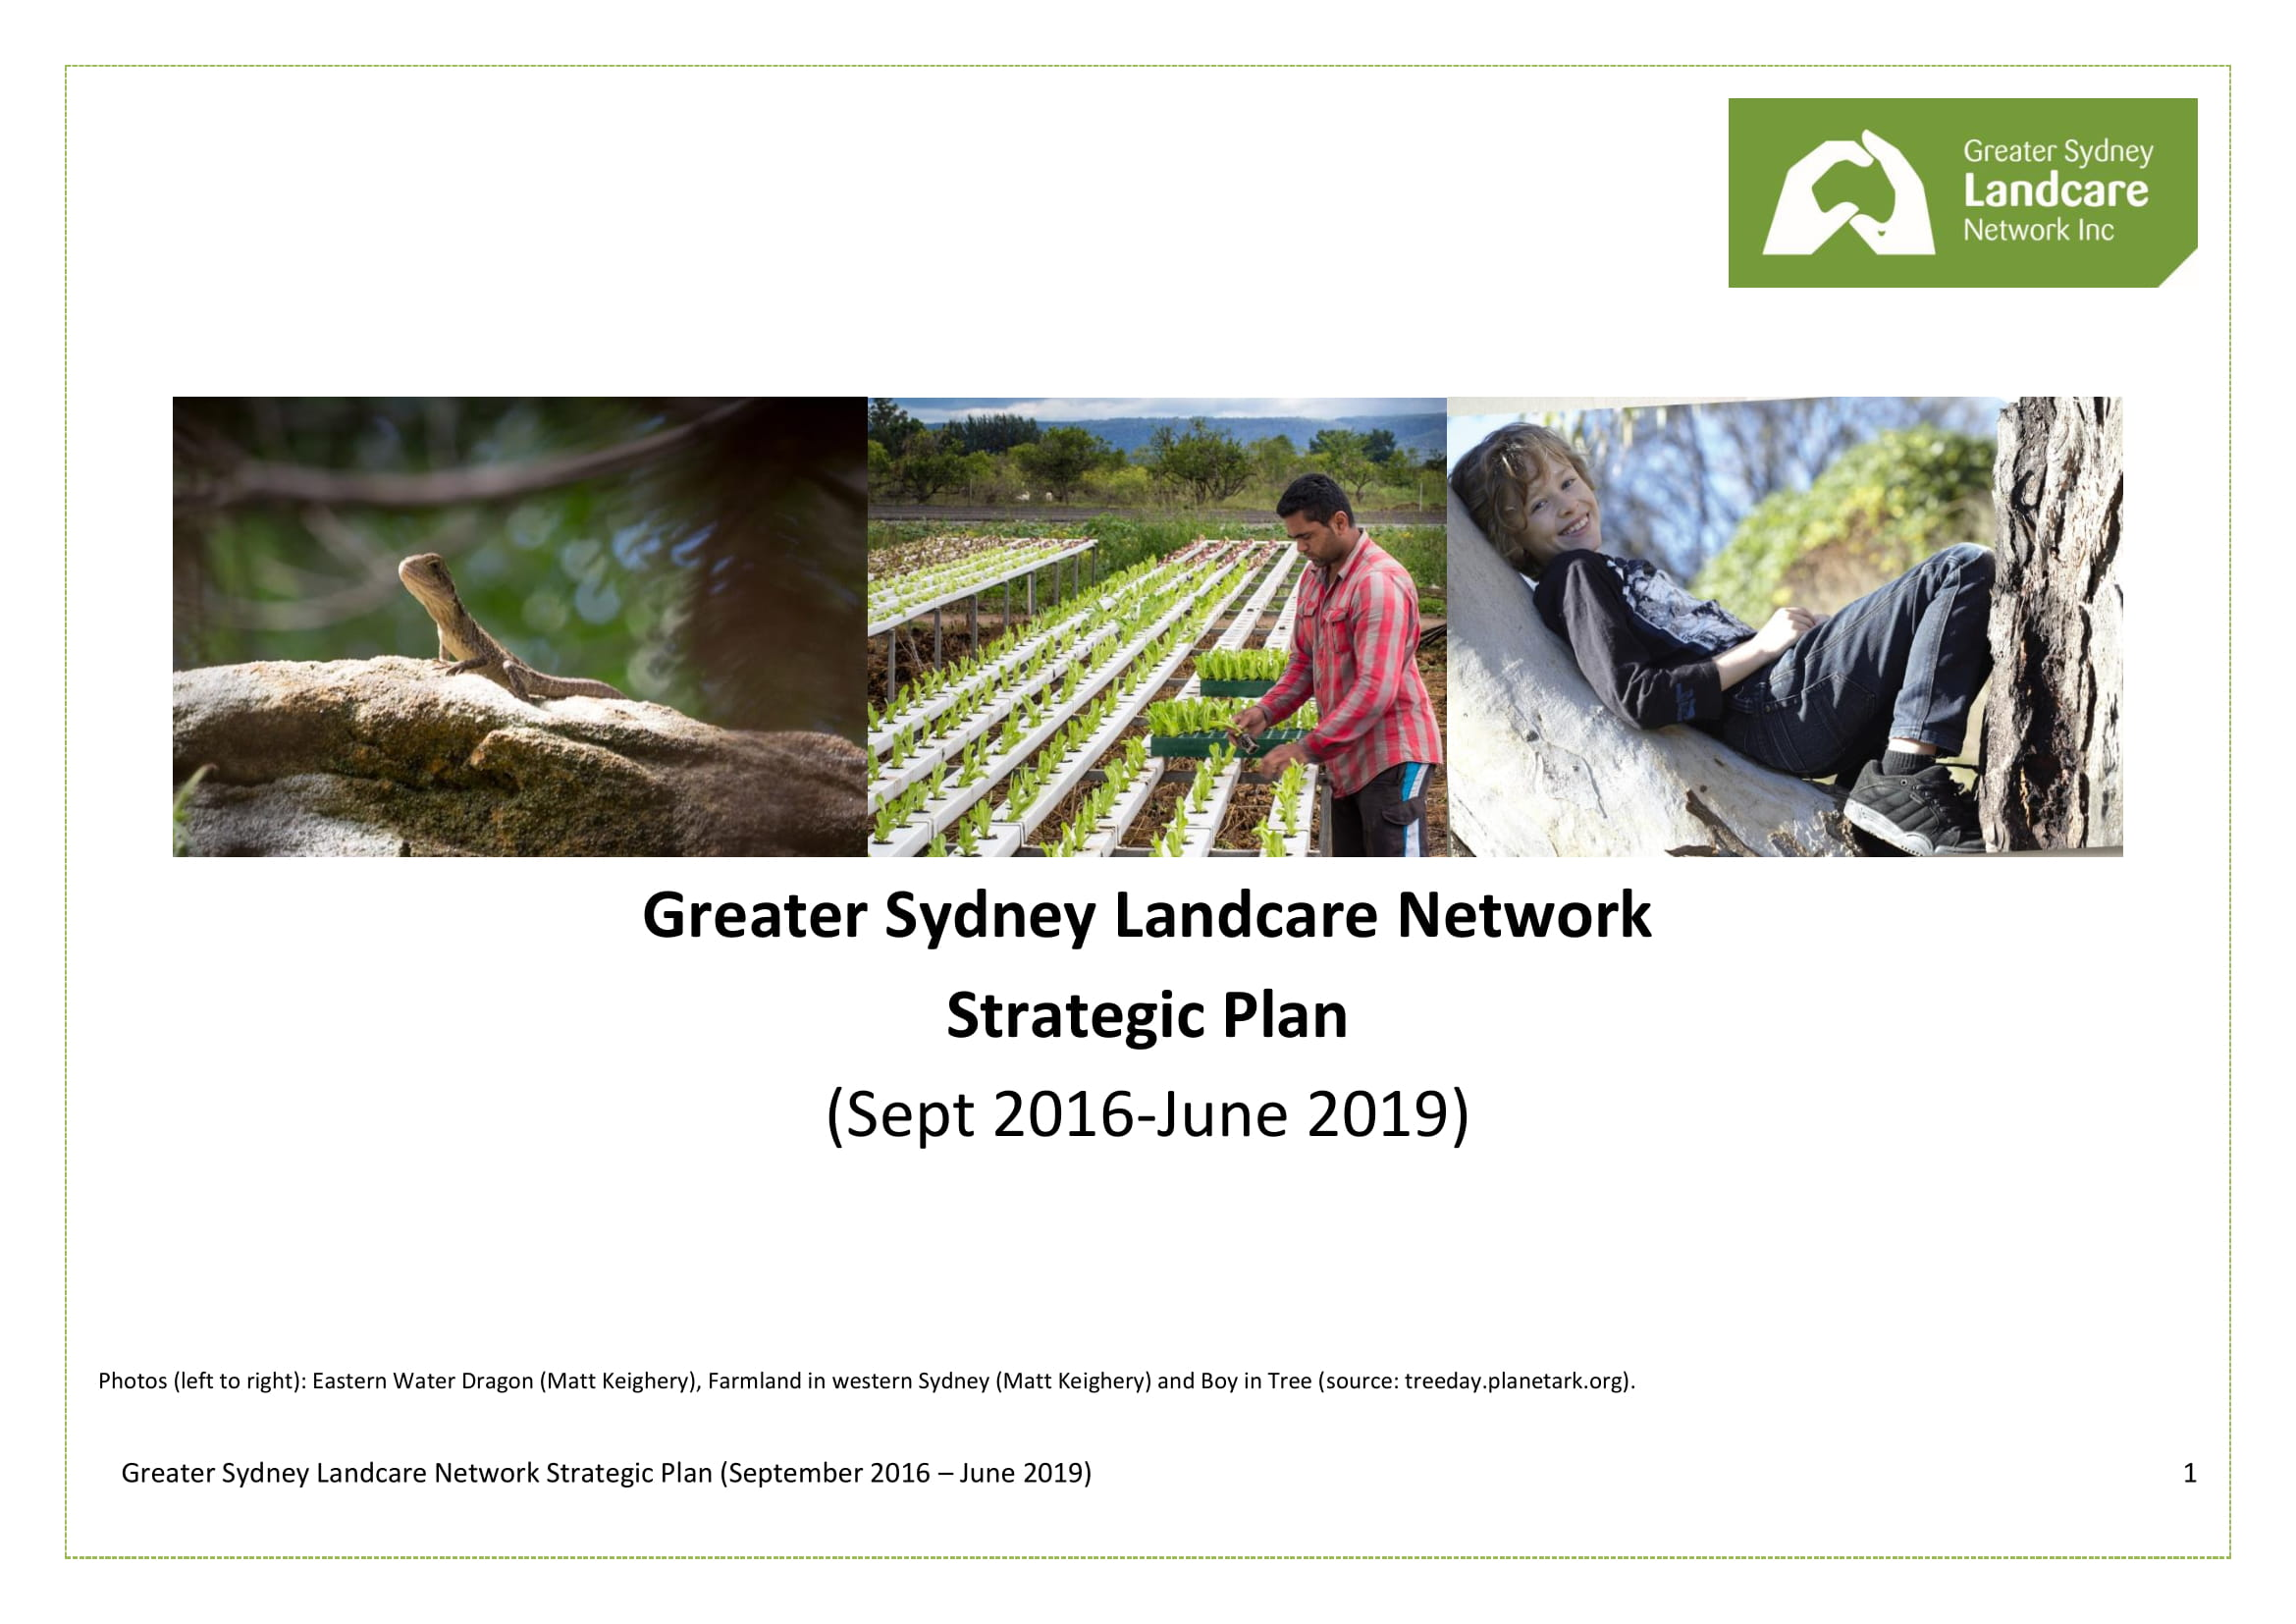 greater sydney landcare network strategic plan example